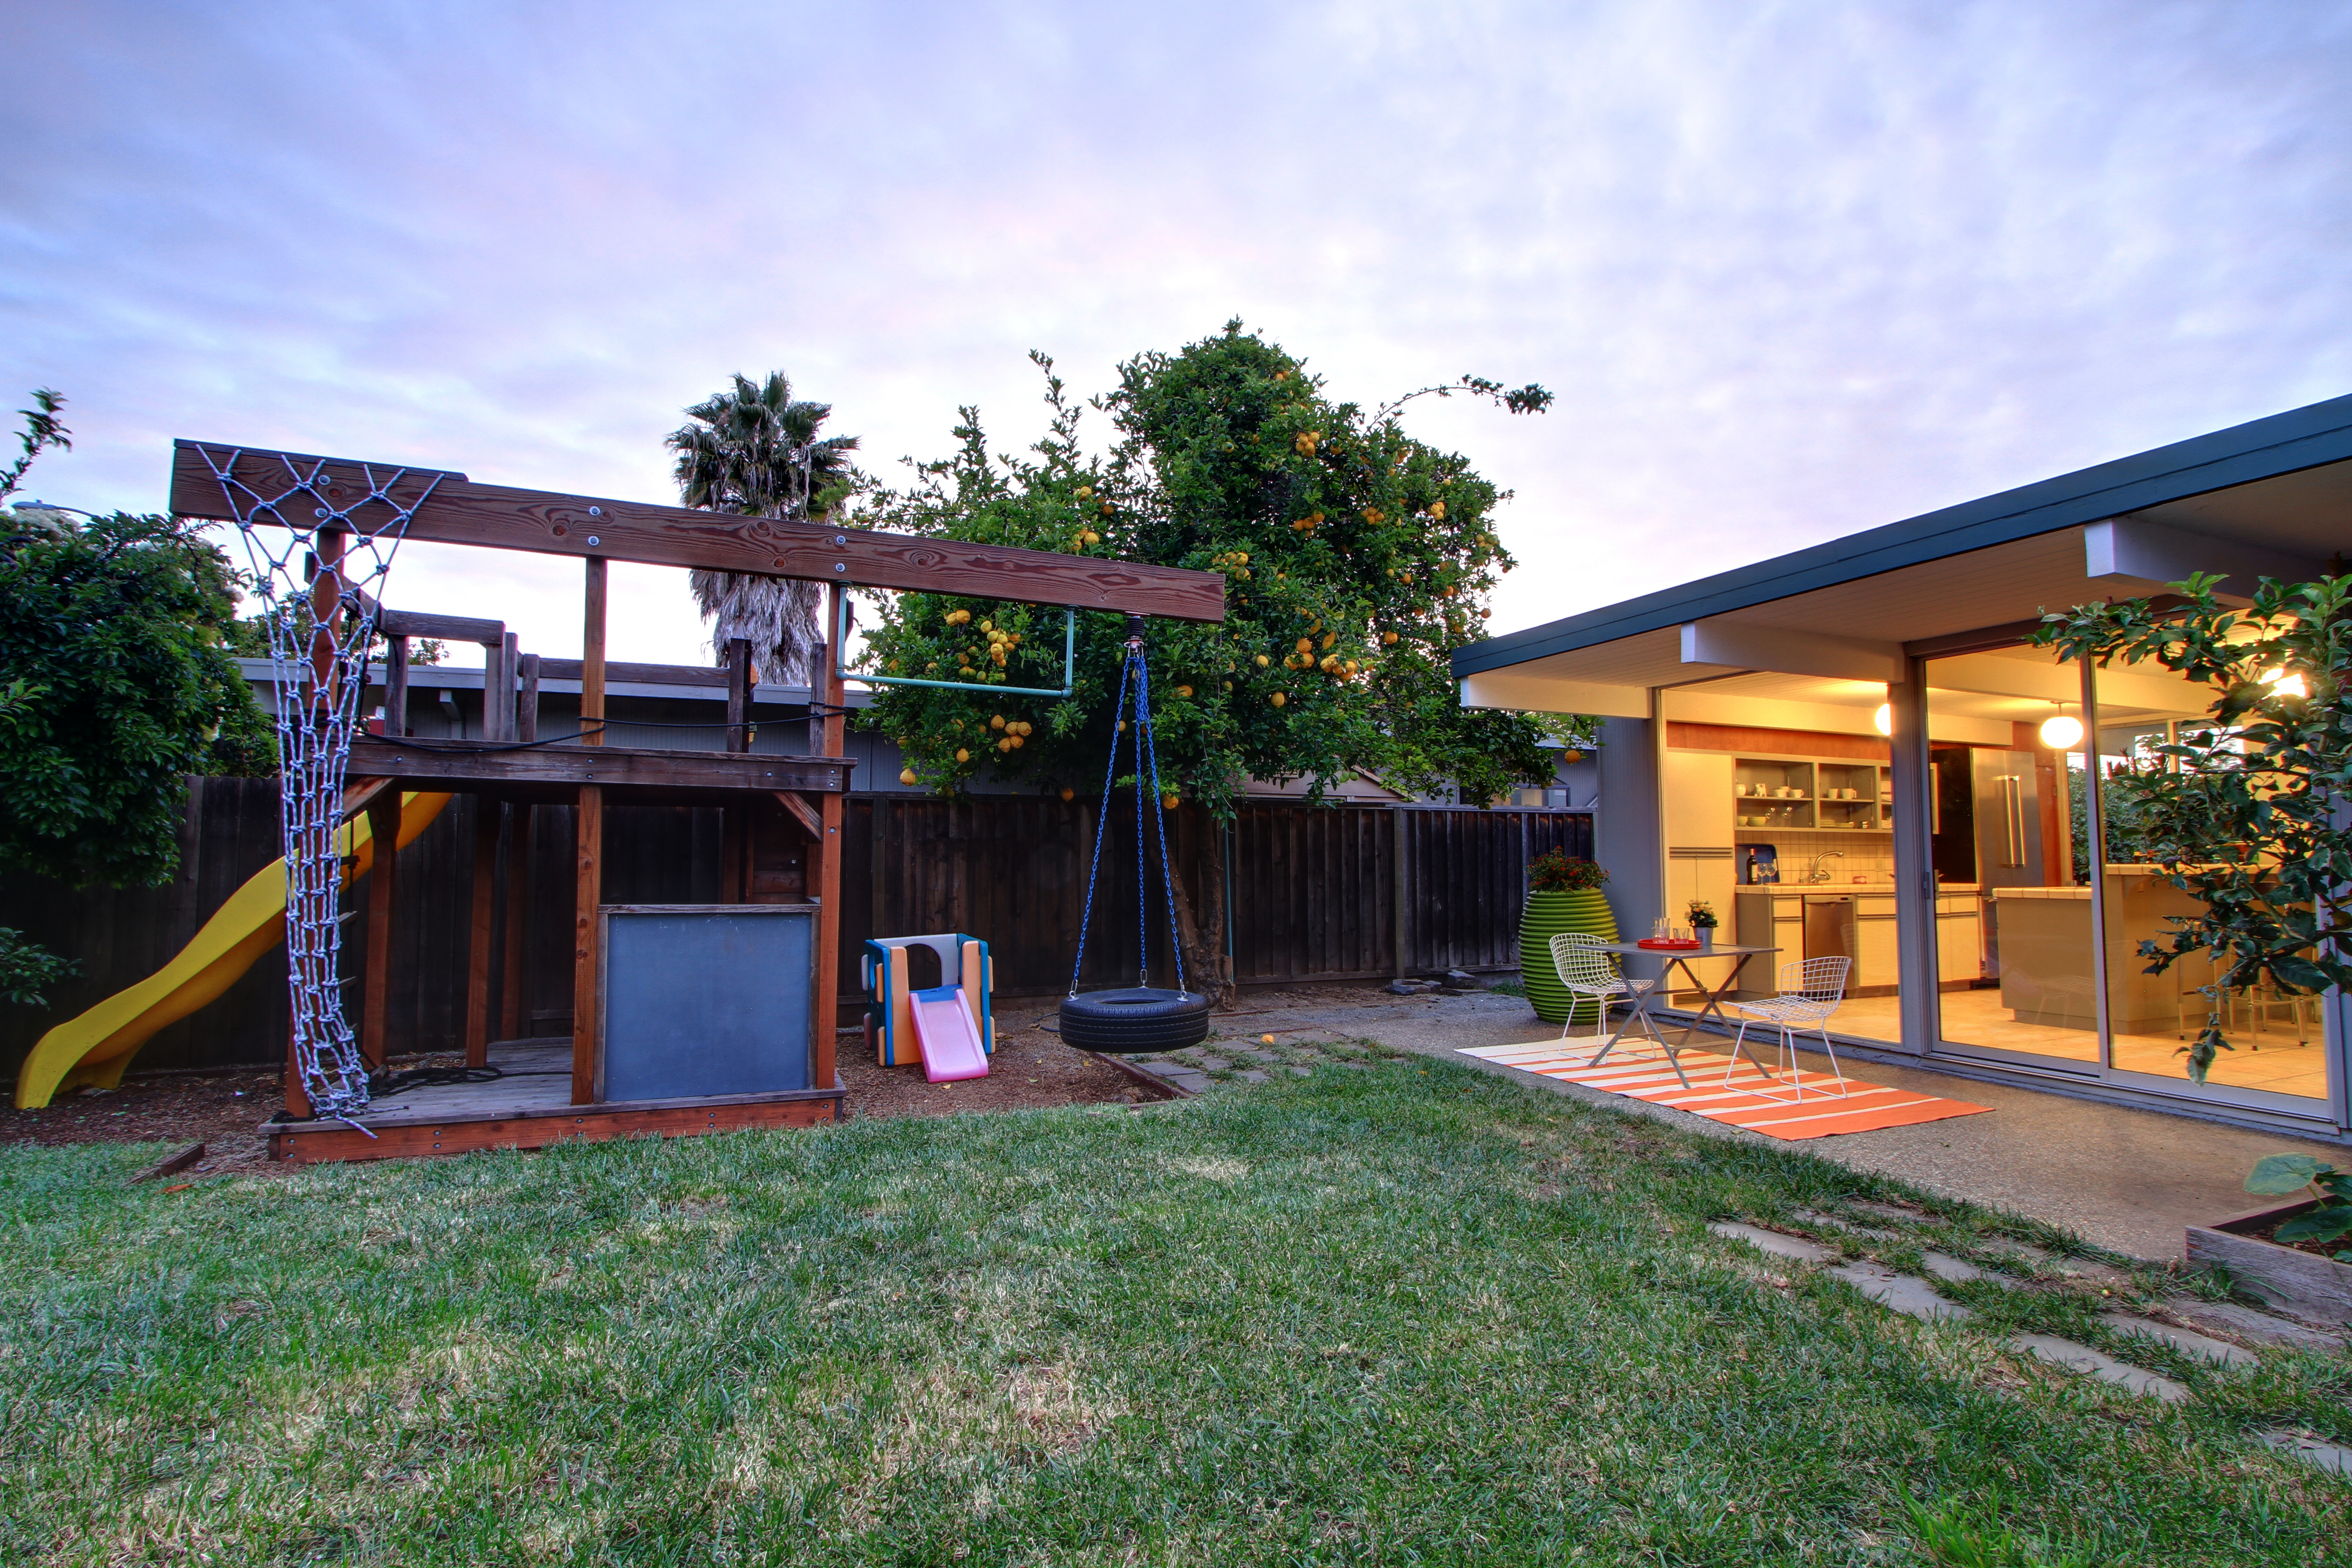 SOLD: 805 Devonshire Way, Sunnyvale 94087 – Eichler Homes Realty on